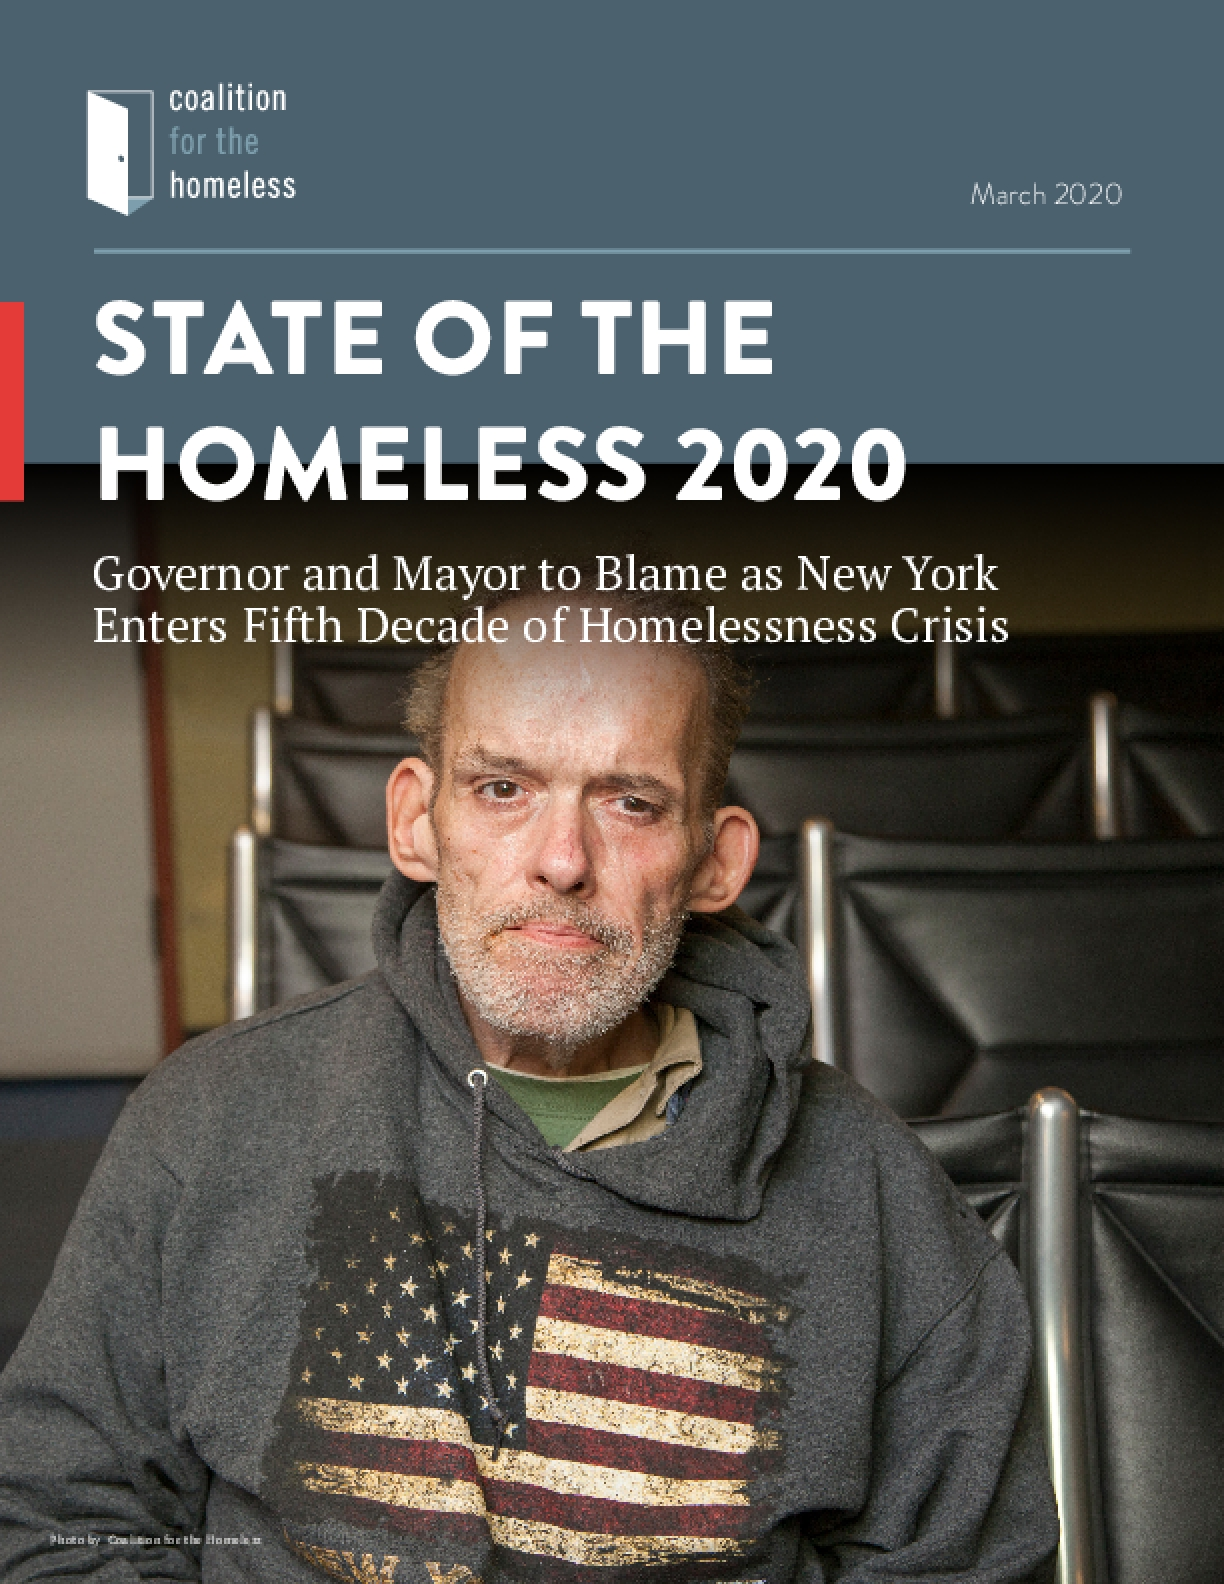 State of the Homeless 2020